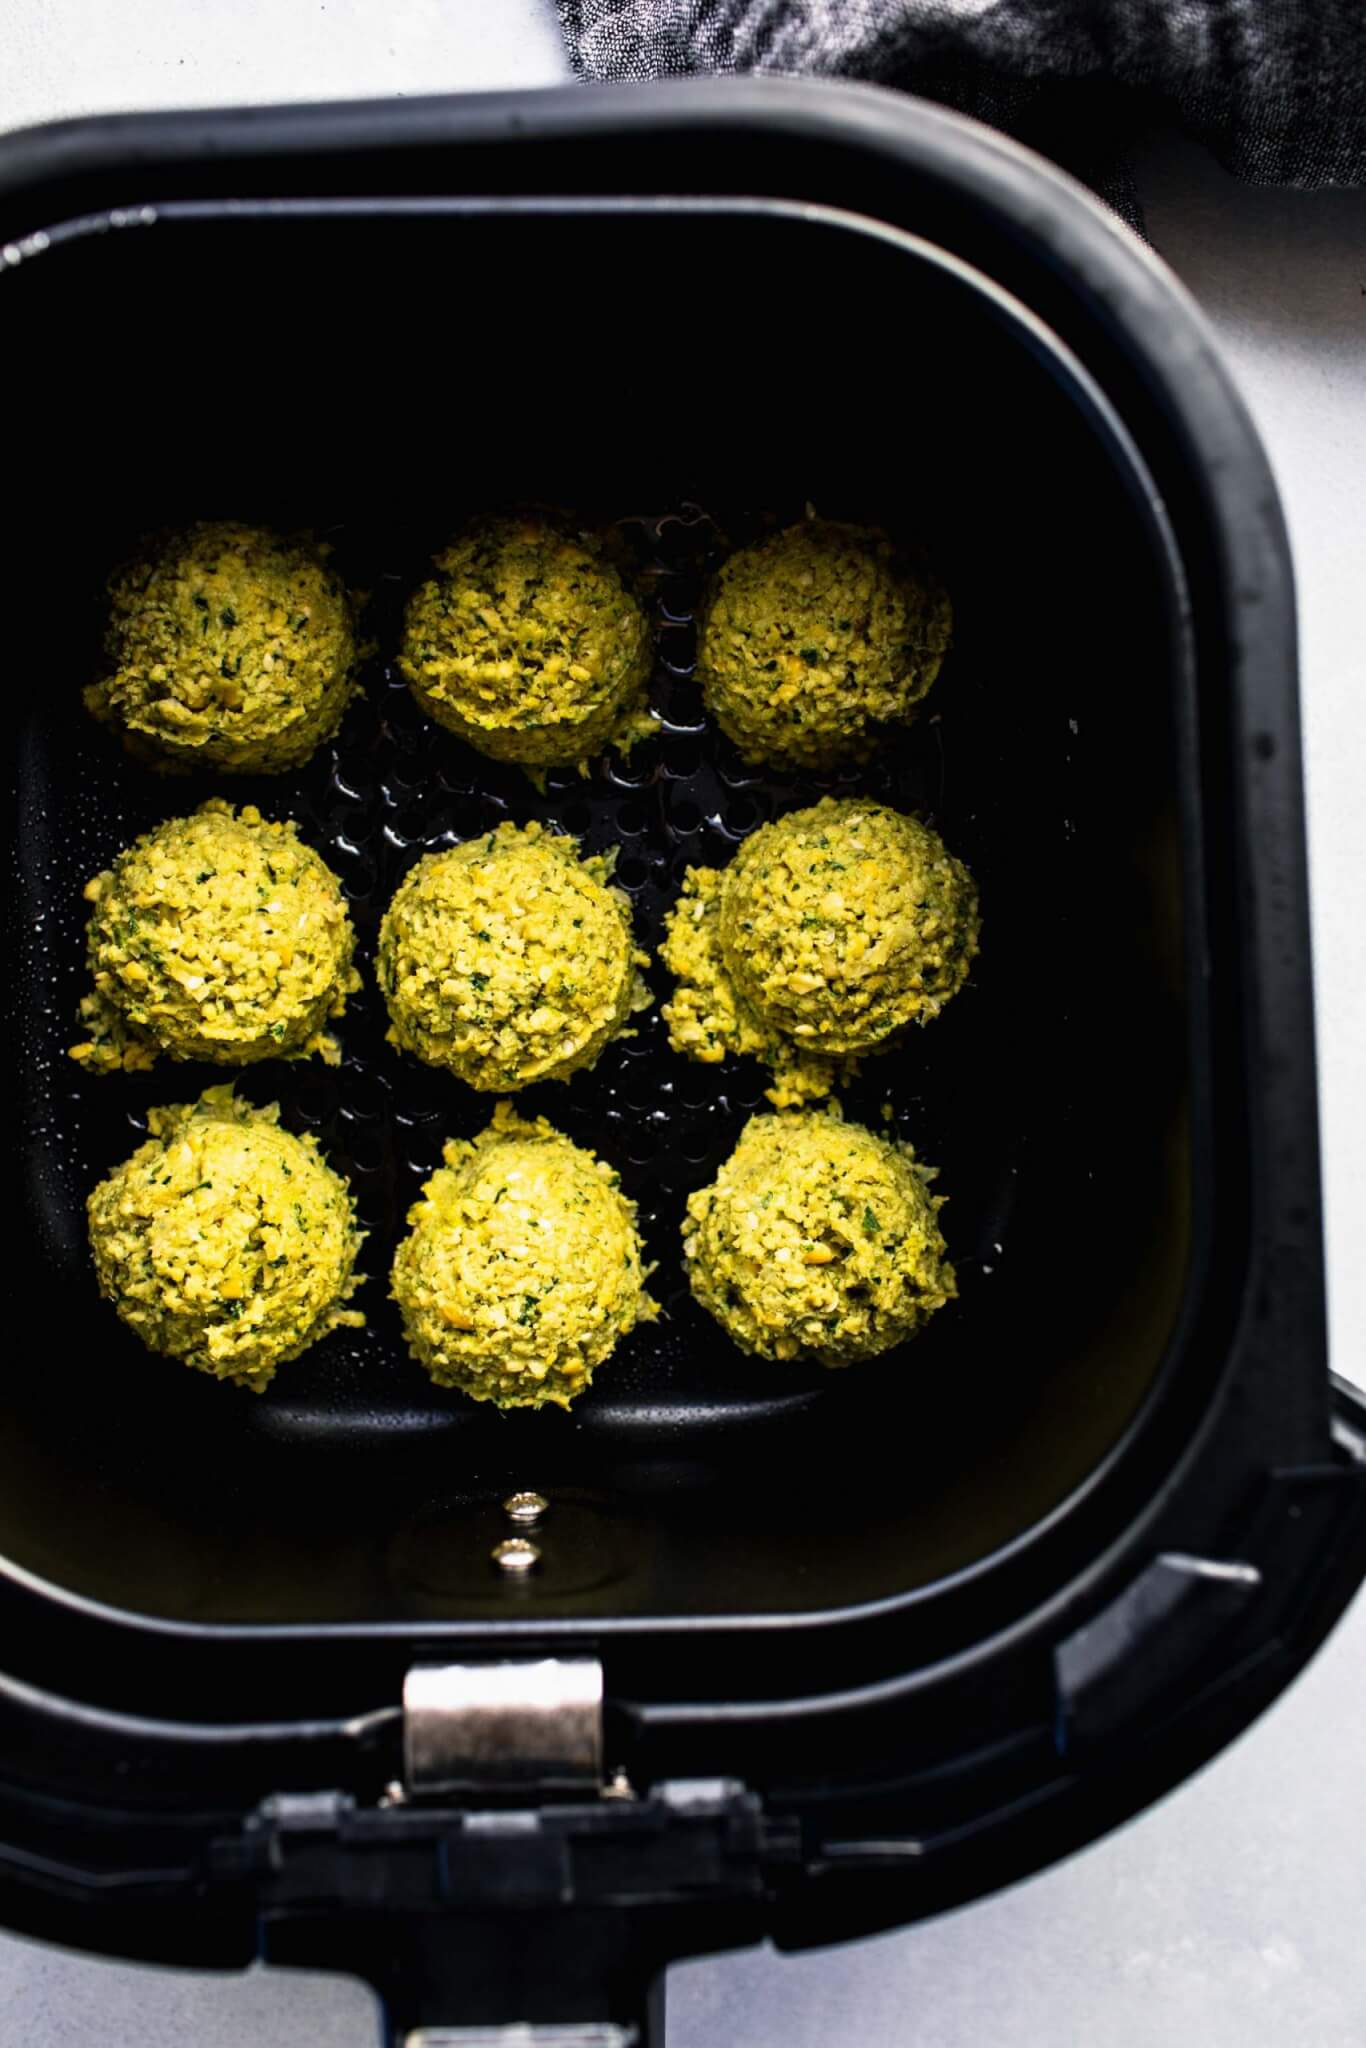 Uncooked falafel balls in air fryer basket.